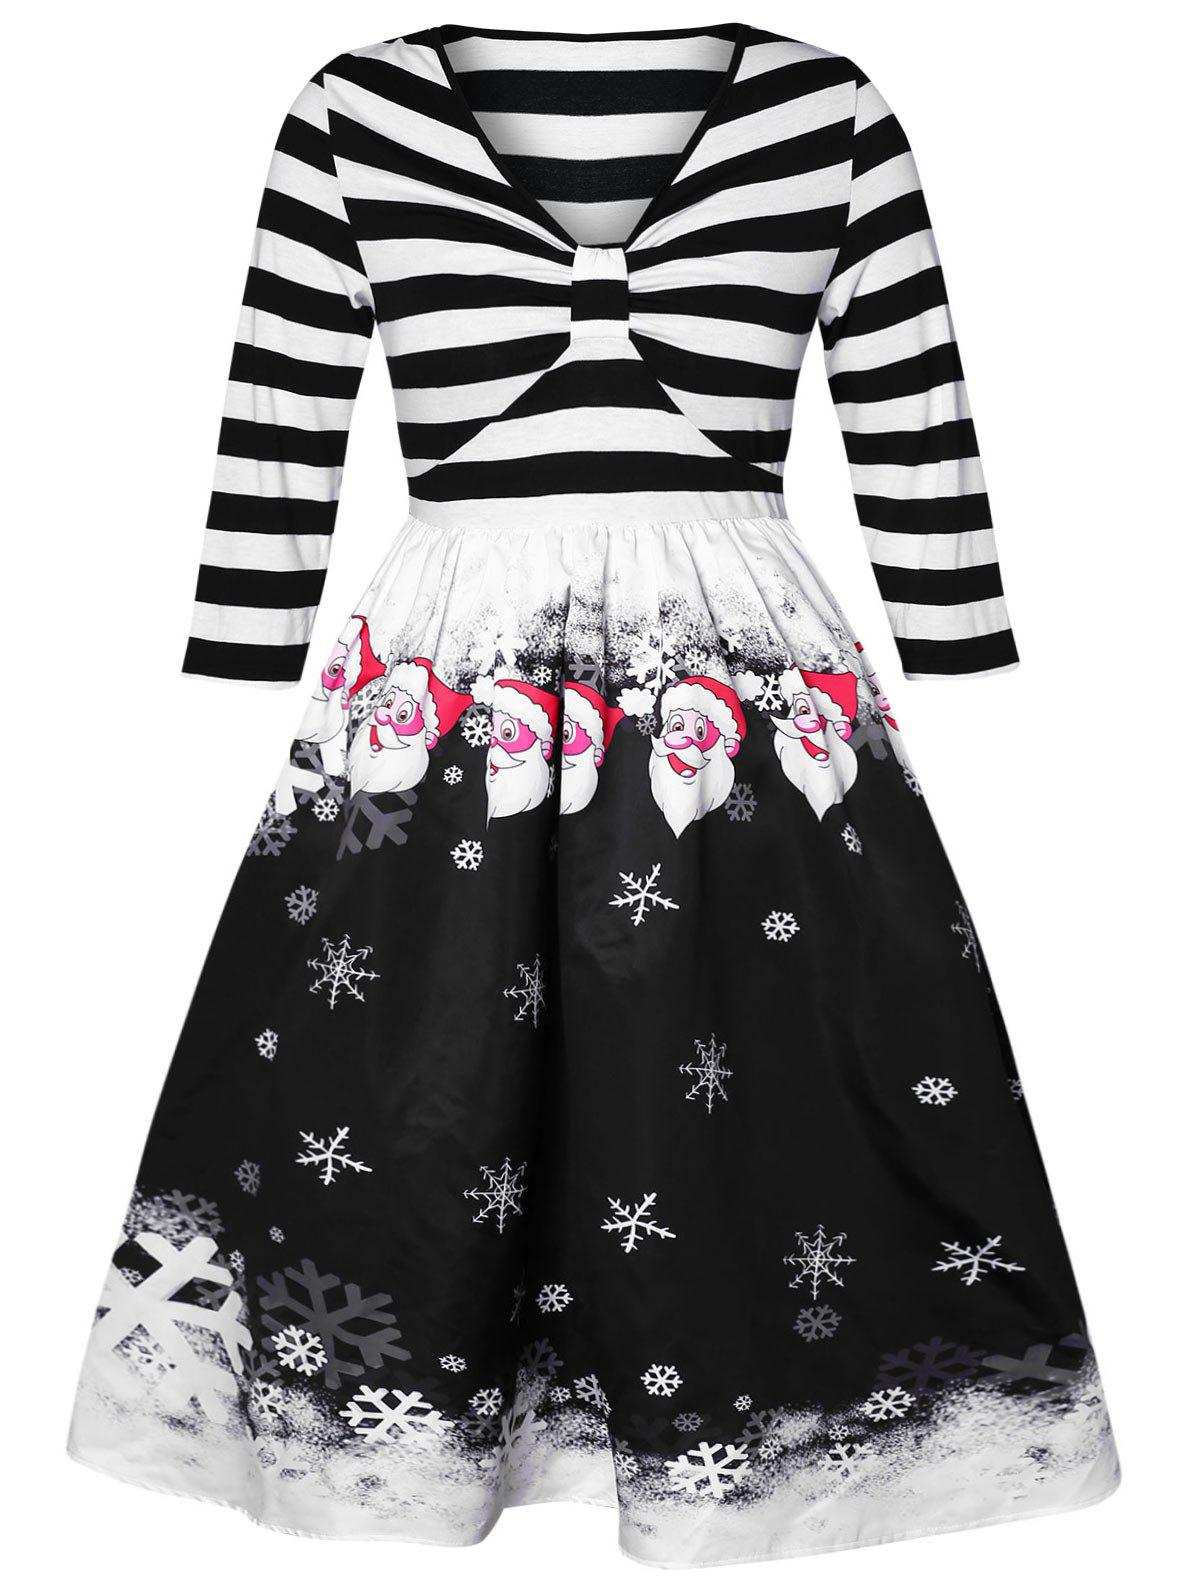 Affordable Plus Size Vintage Snowflake Stripes Christmas Flare Dress